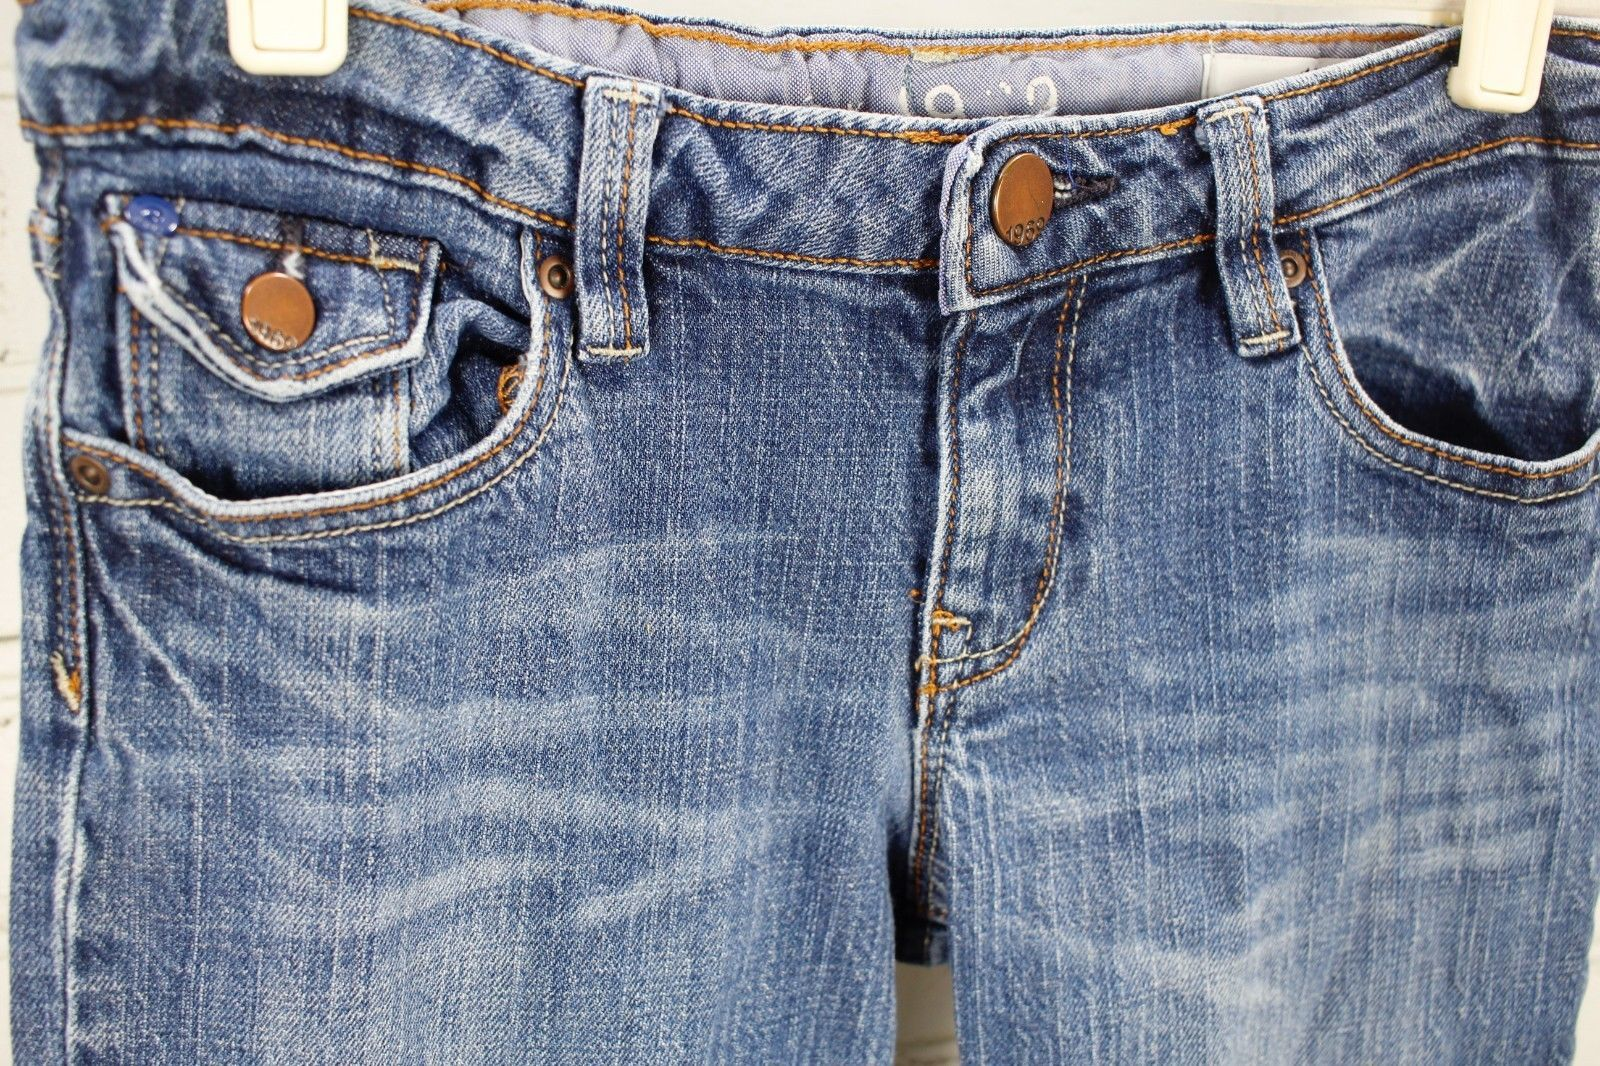 Gap Kids Straight Leg Jeans 1969 Boys Size 10 Plus Medium Wash Cotton Stretch image 2